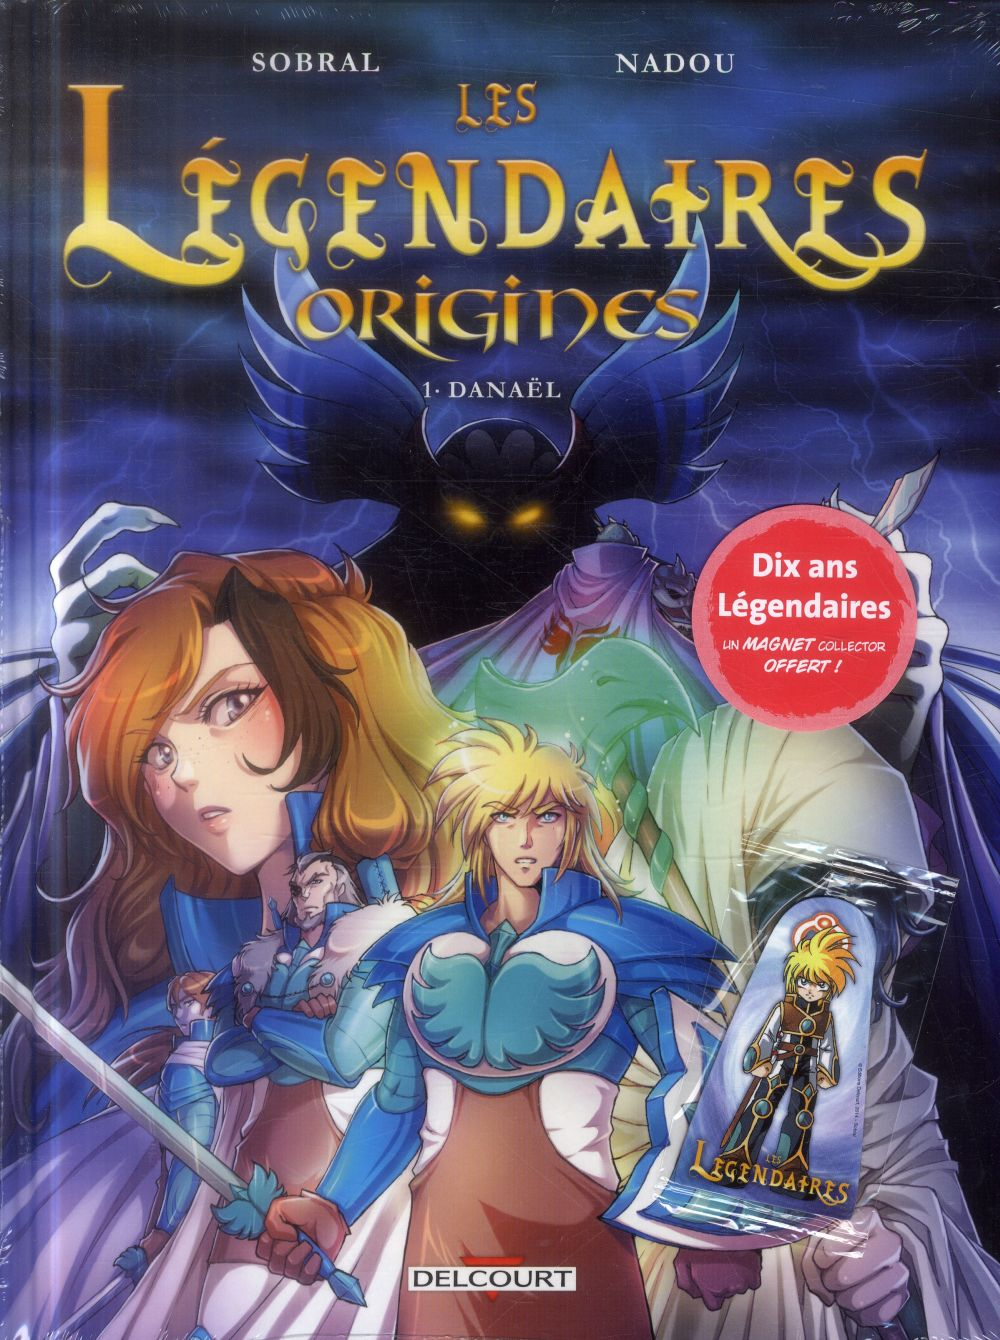 LES LEGENDAIRES ORIGINES 1 DANAEL